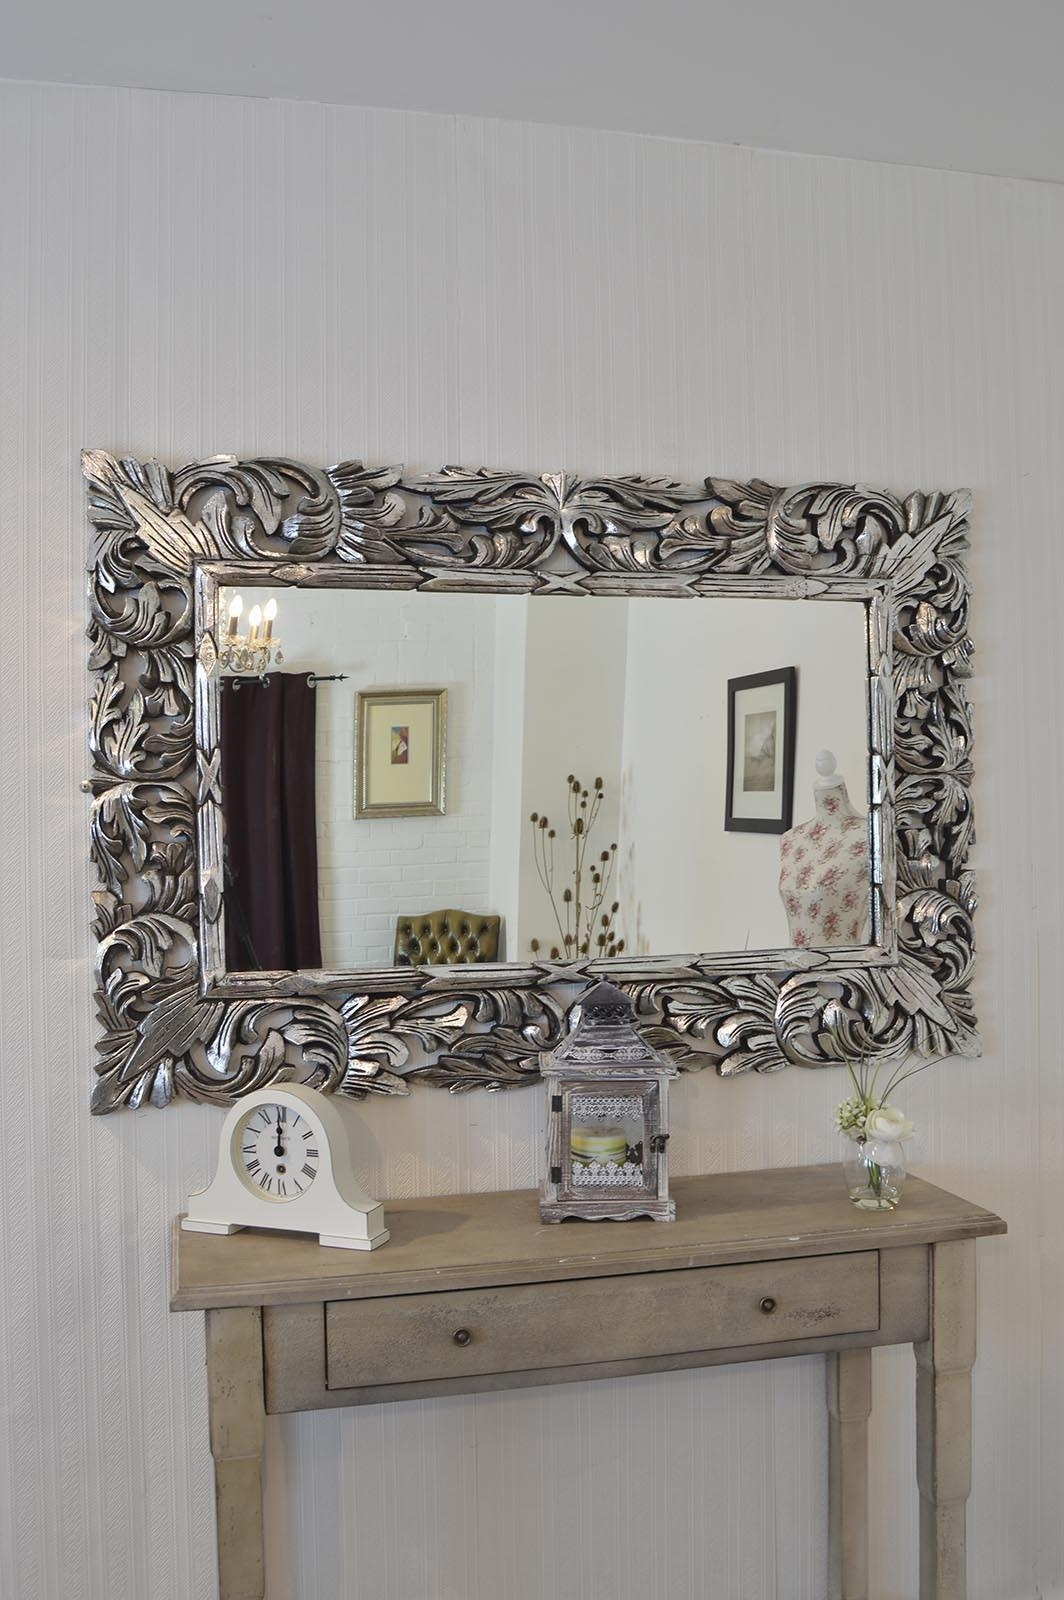 Large Silver Wall Mirror 57 Nice Decorating With Large Ornate Wall Pertaining To Silver Ornate Wall Mirror (Image 9 of 20)